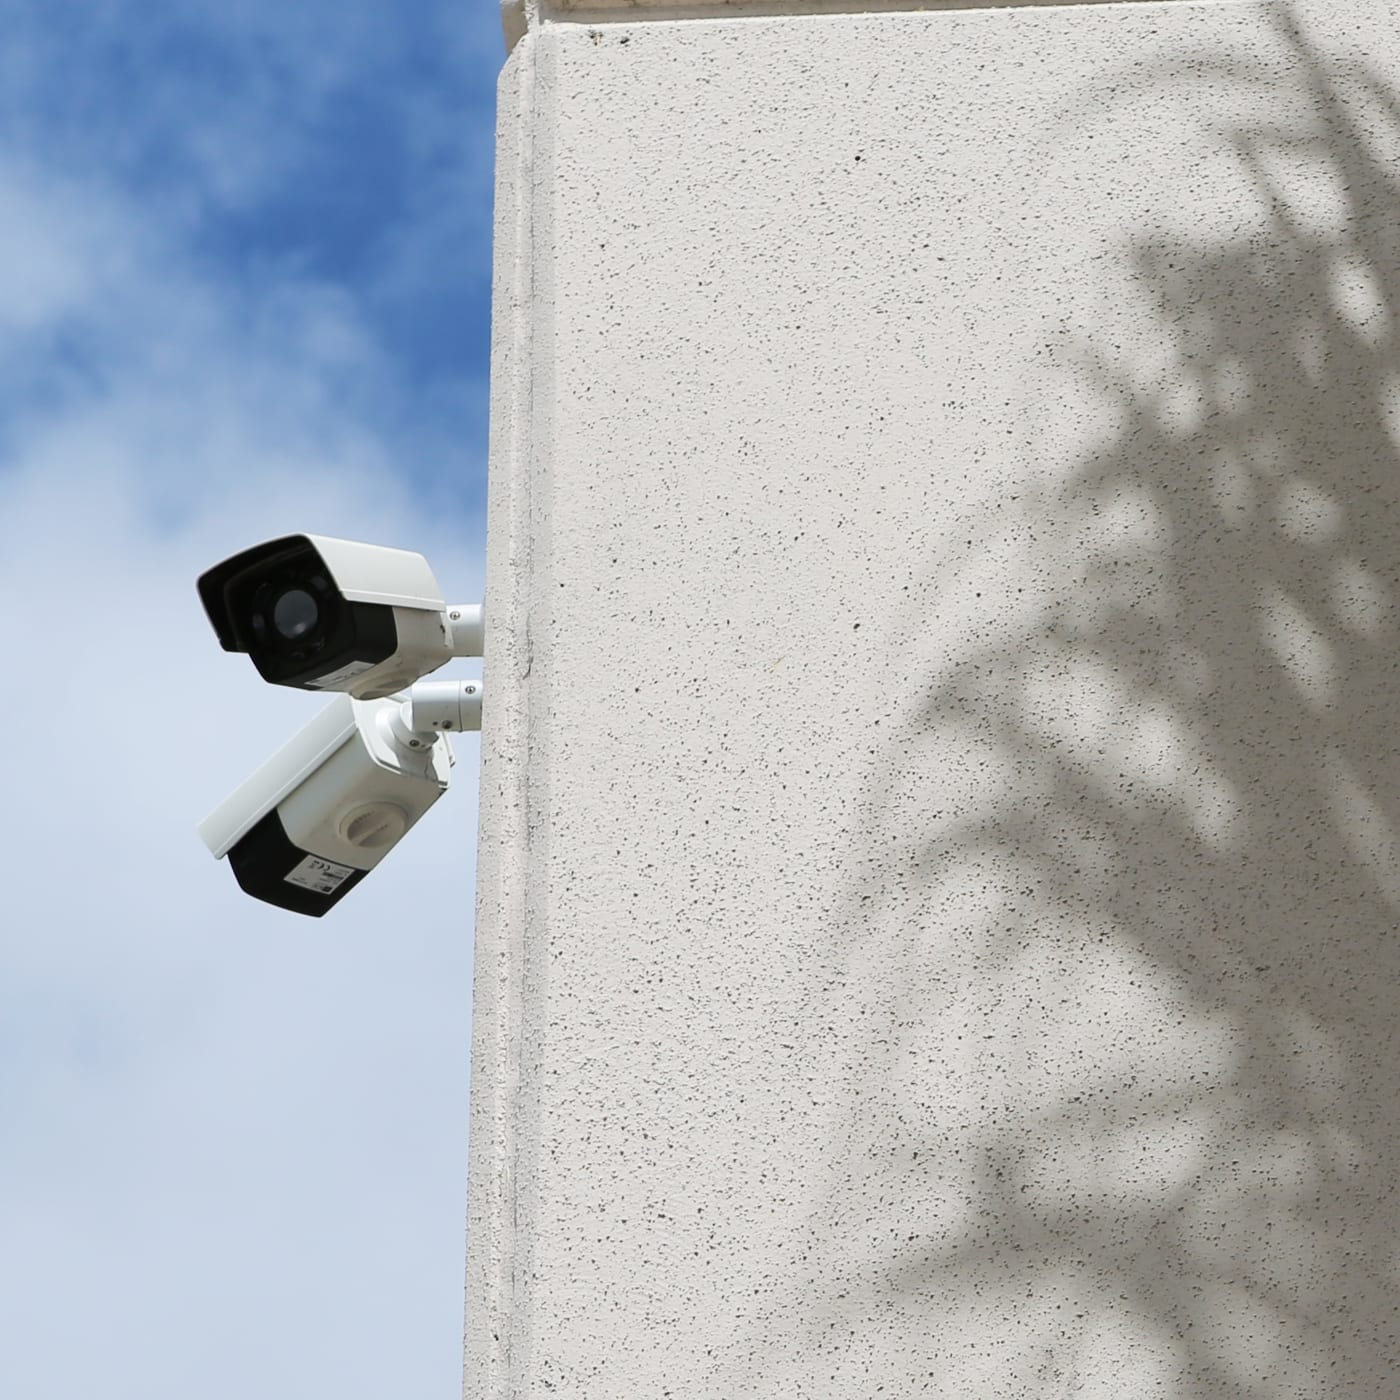 Security cameras at Jupiter Park Self Storage in Jupiter, Florida